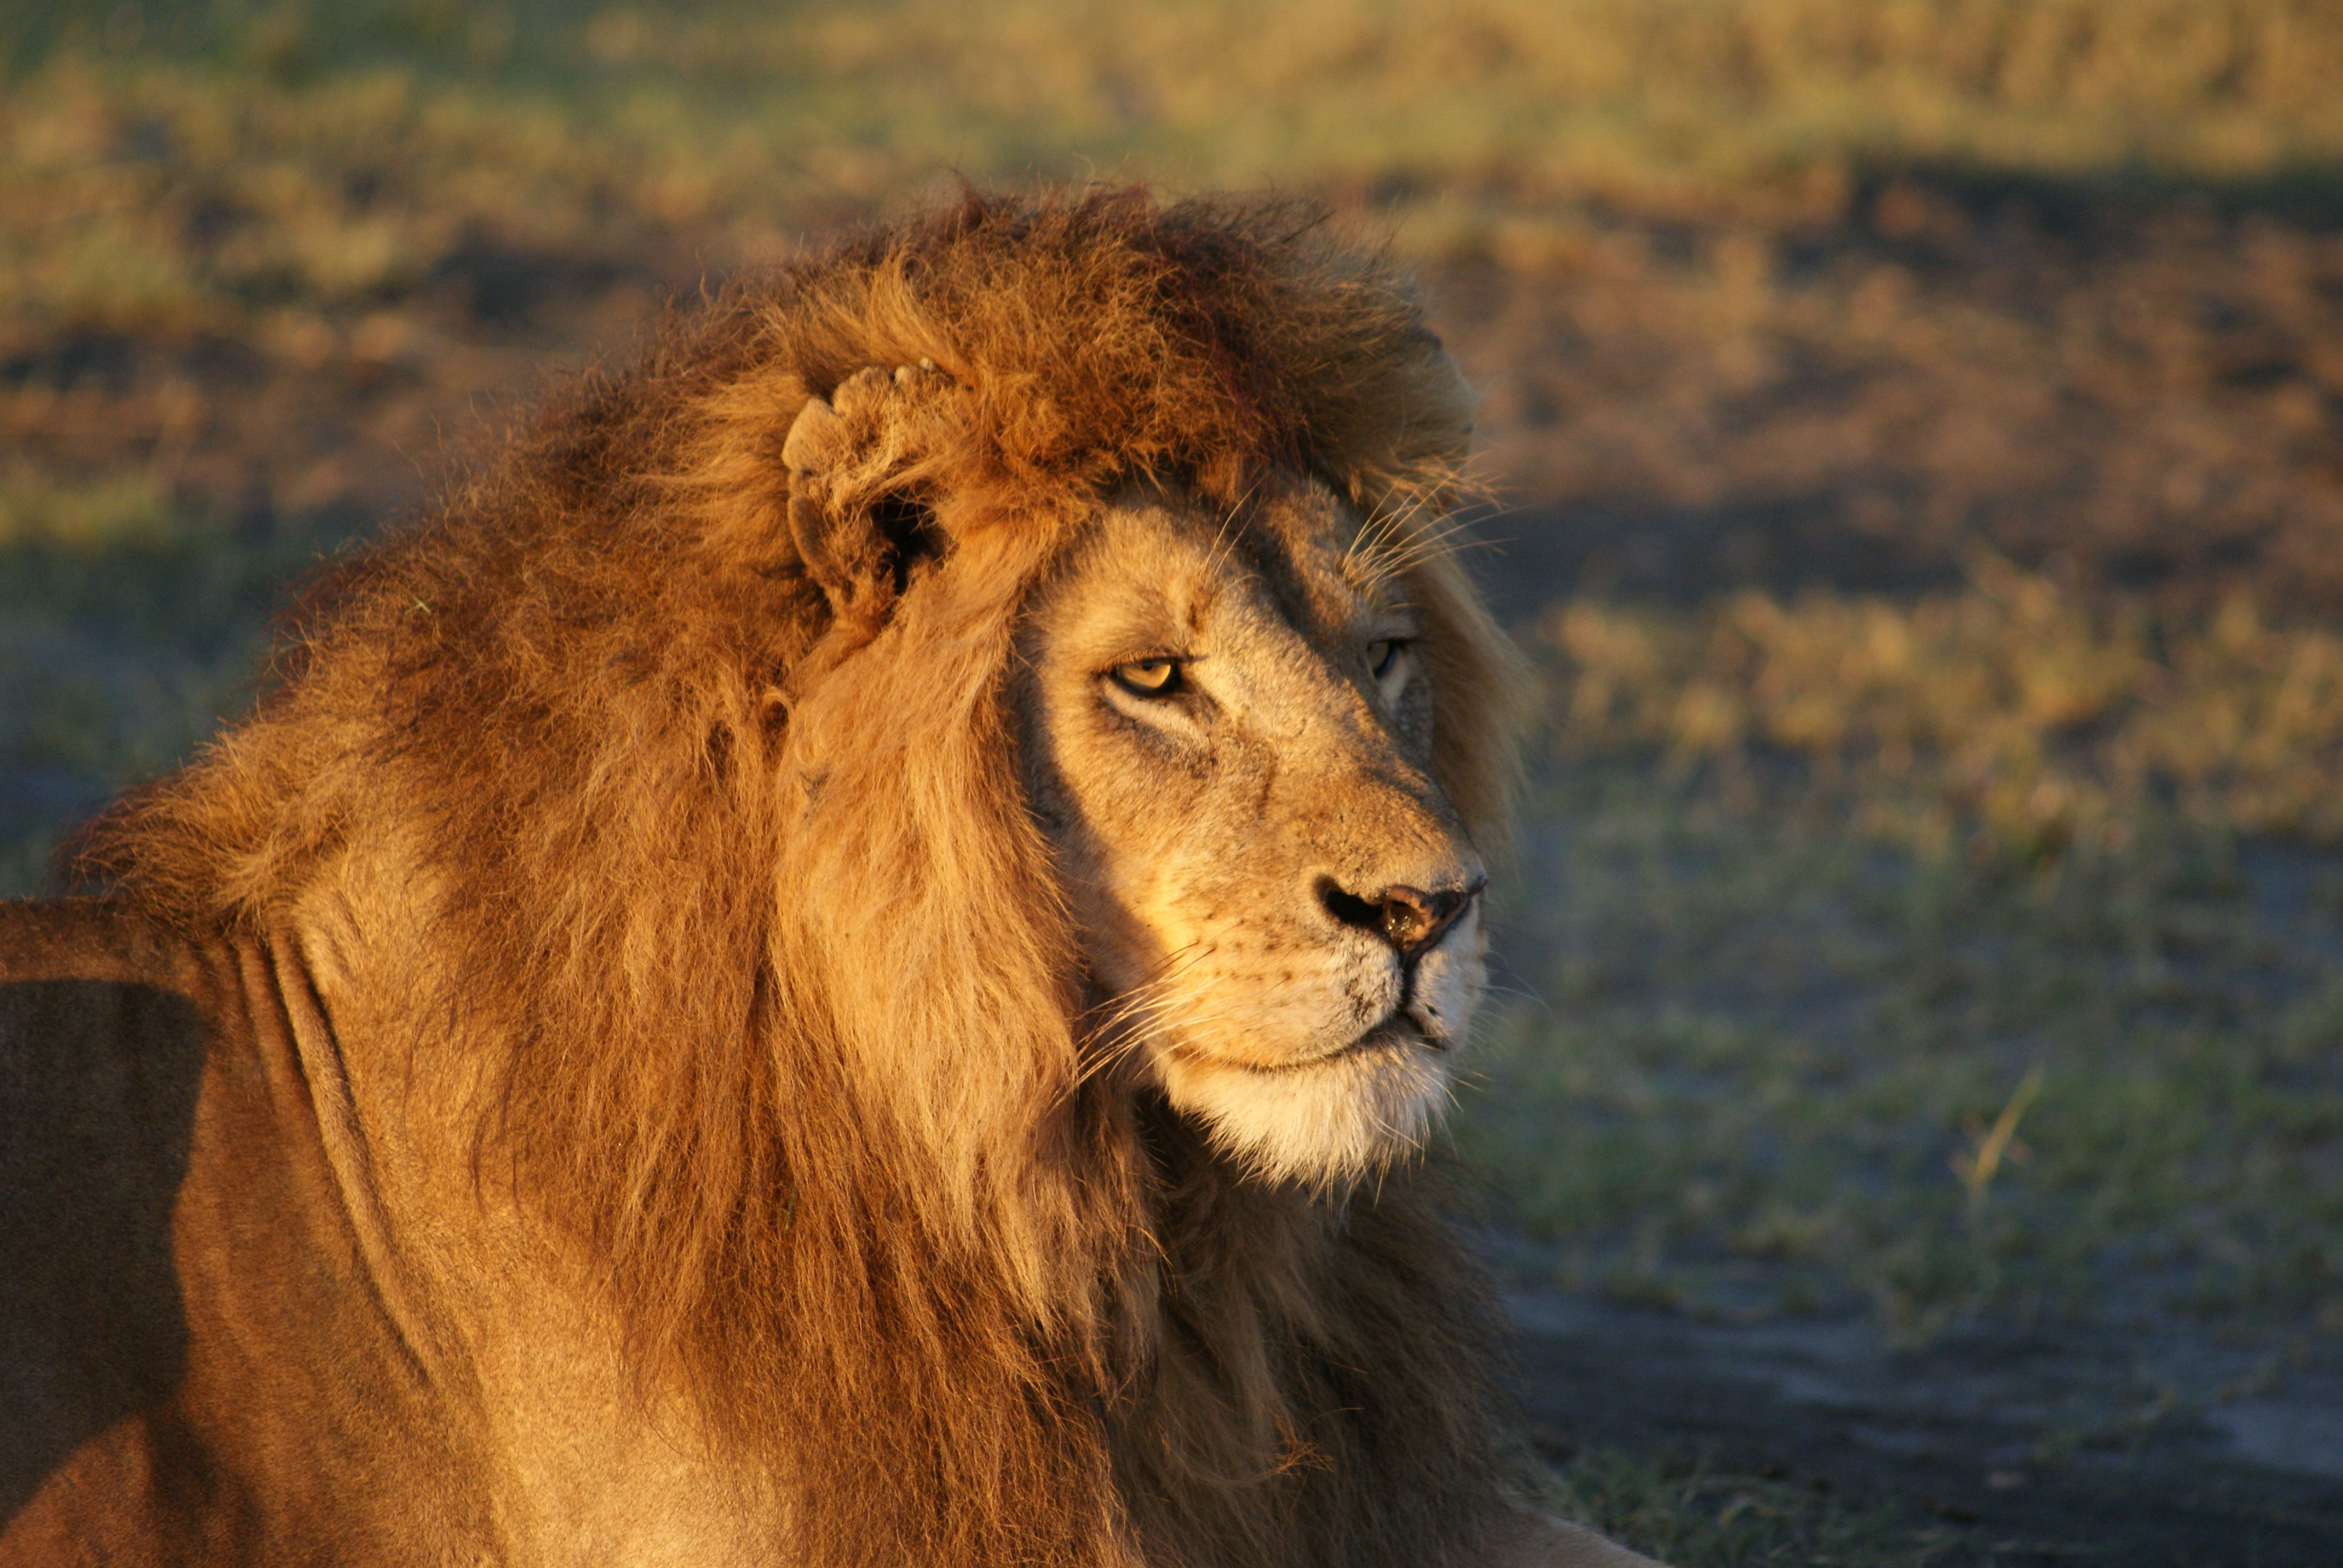 Lion S Don T Lose Sleep Over The Opinion Of Sheep It S